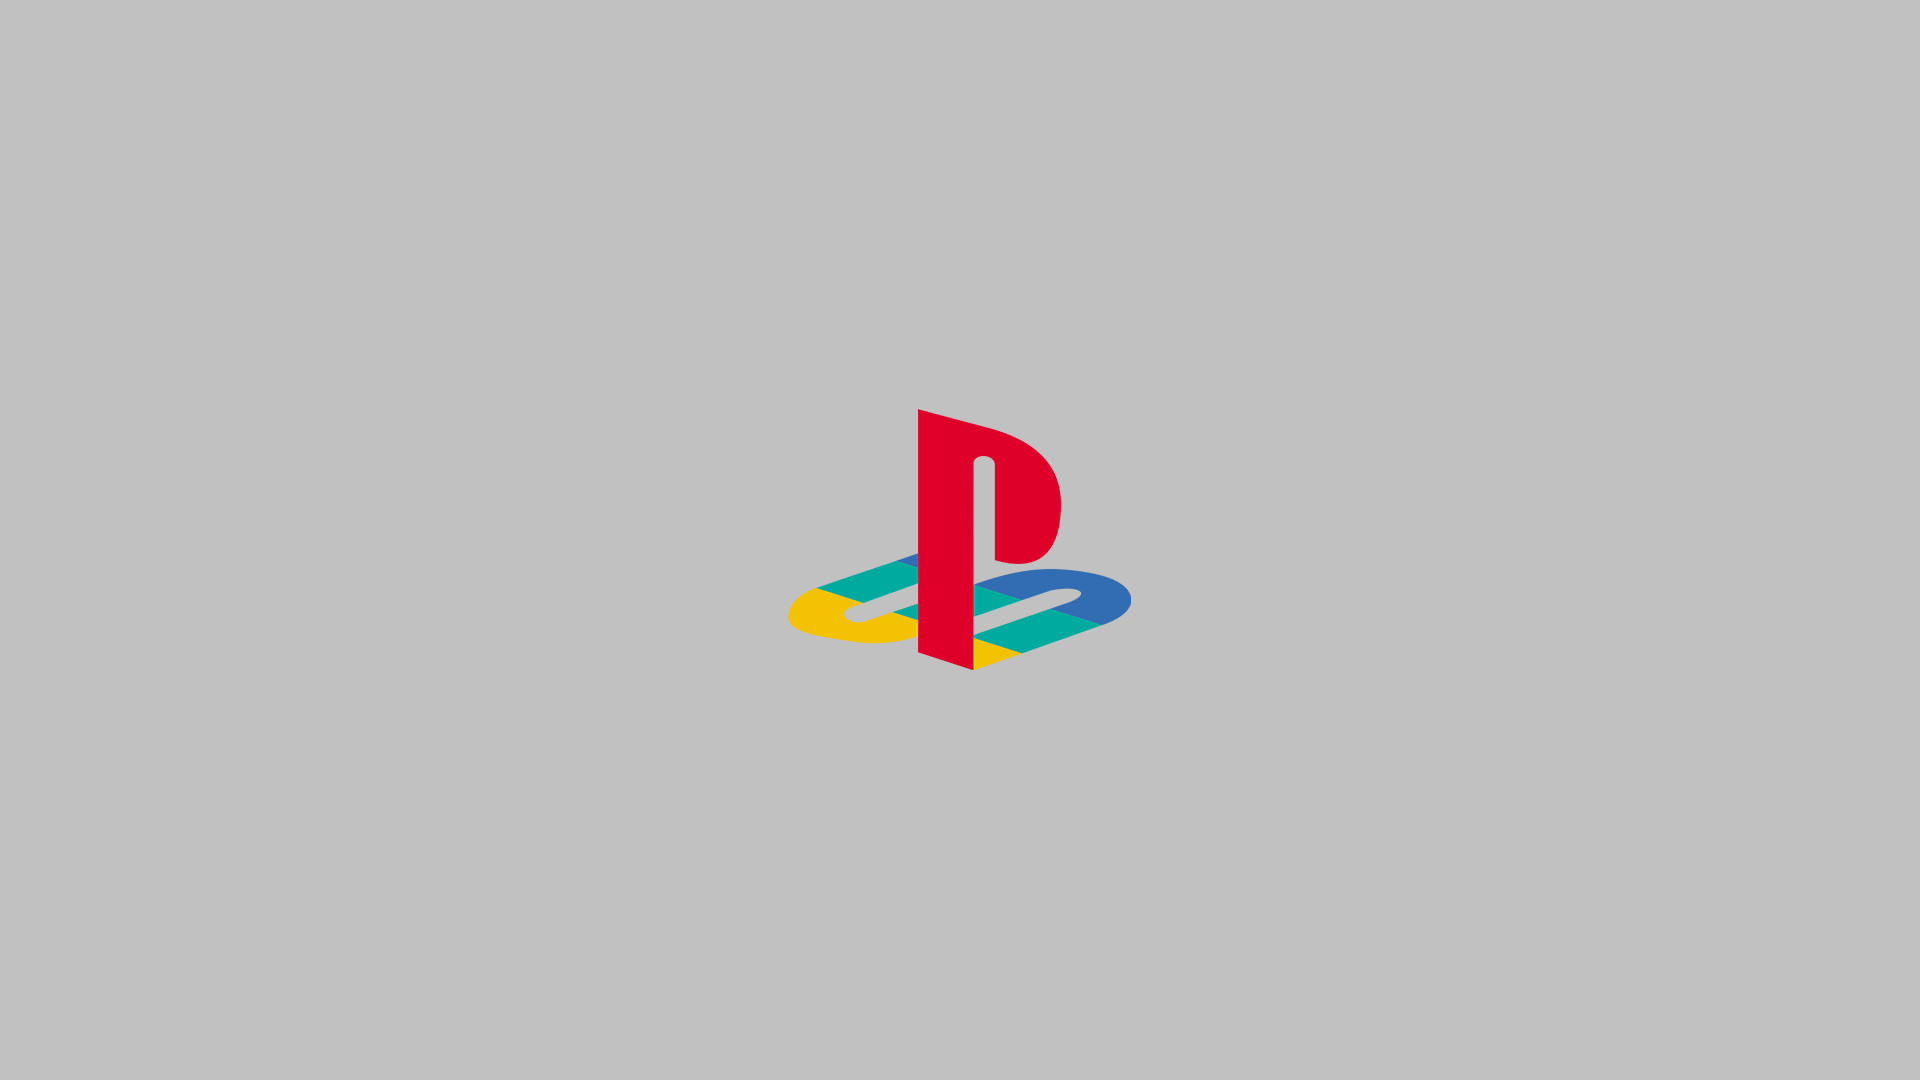 1920x1080 1080p[] PS1 Inspired Wallpaper ...